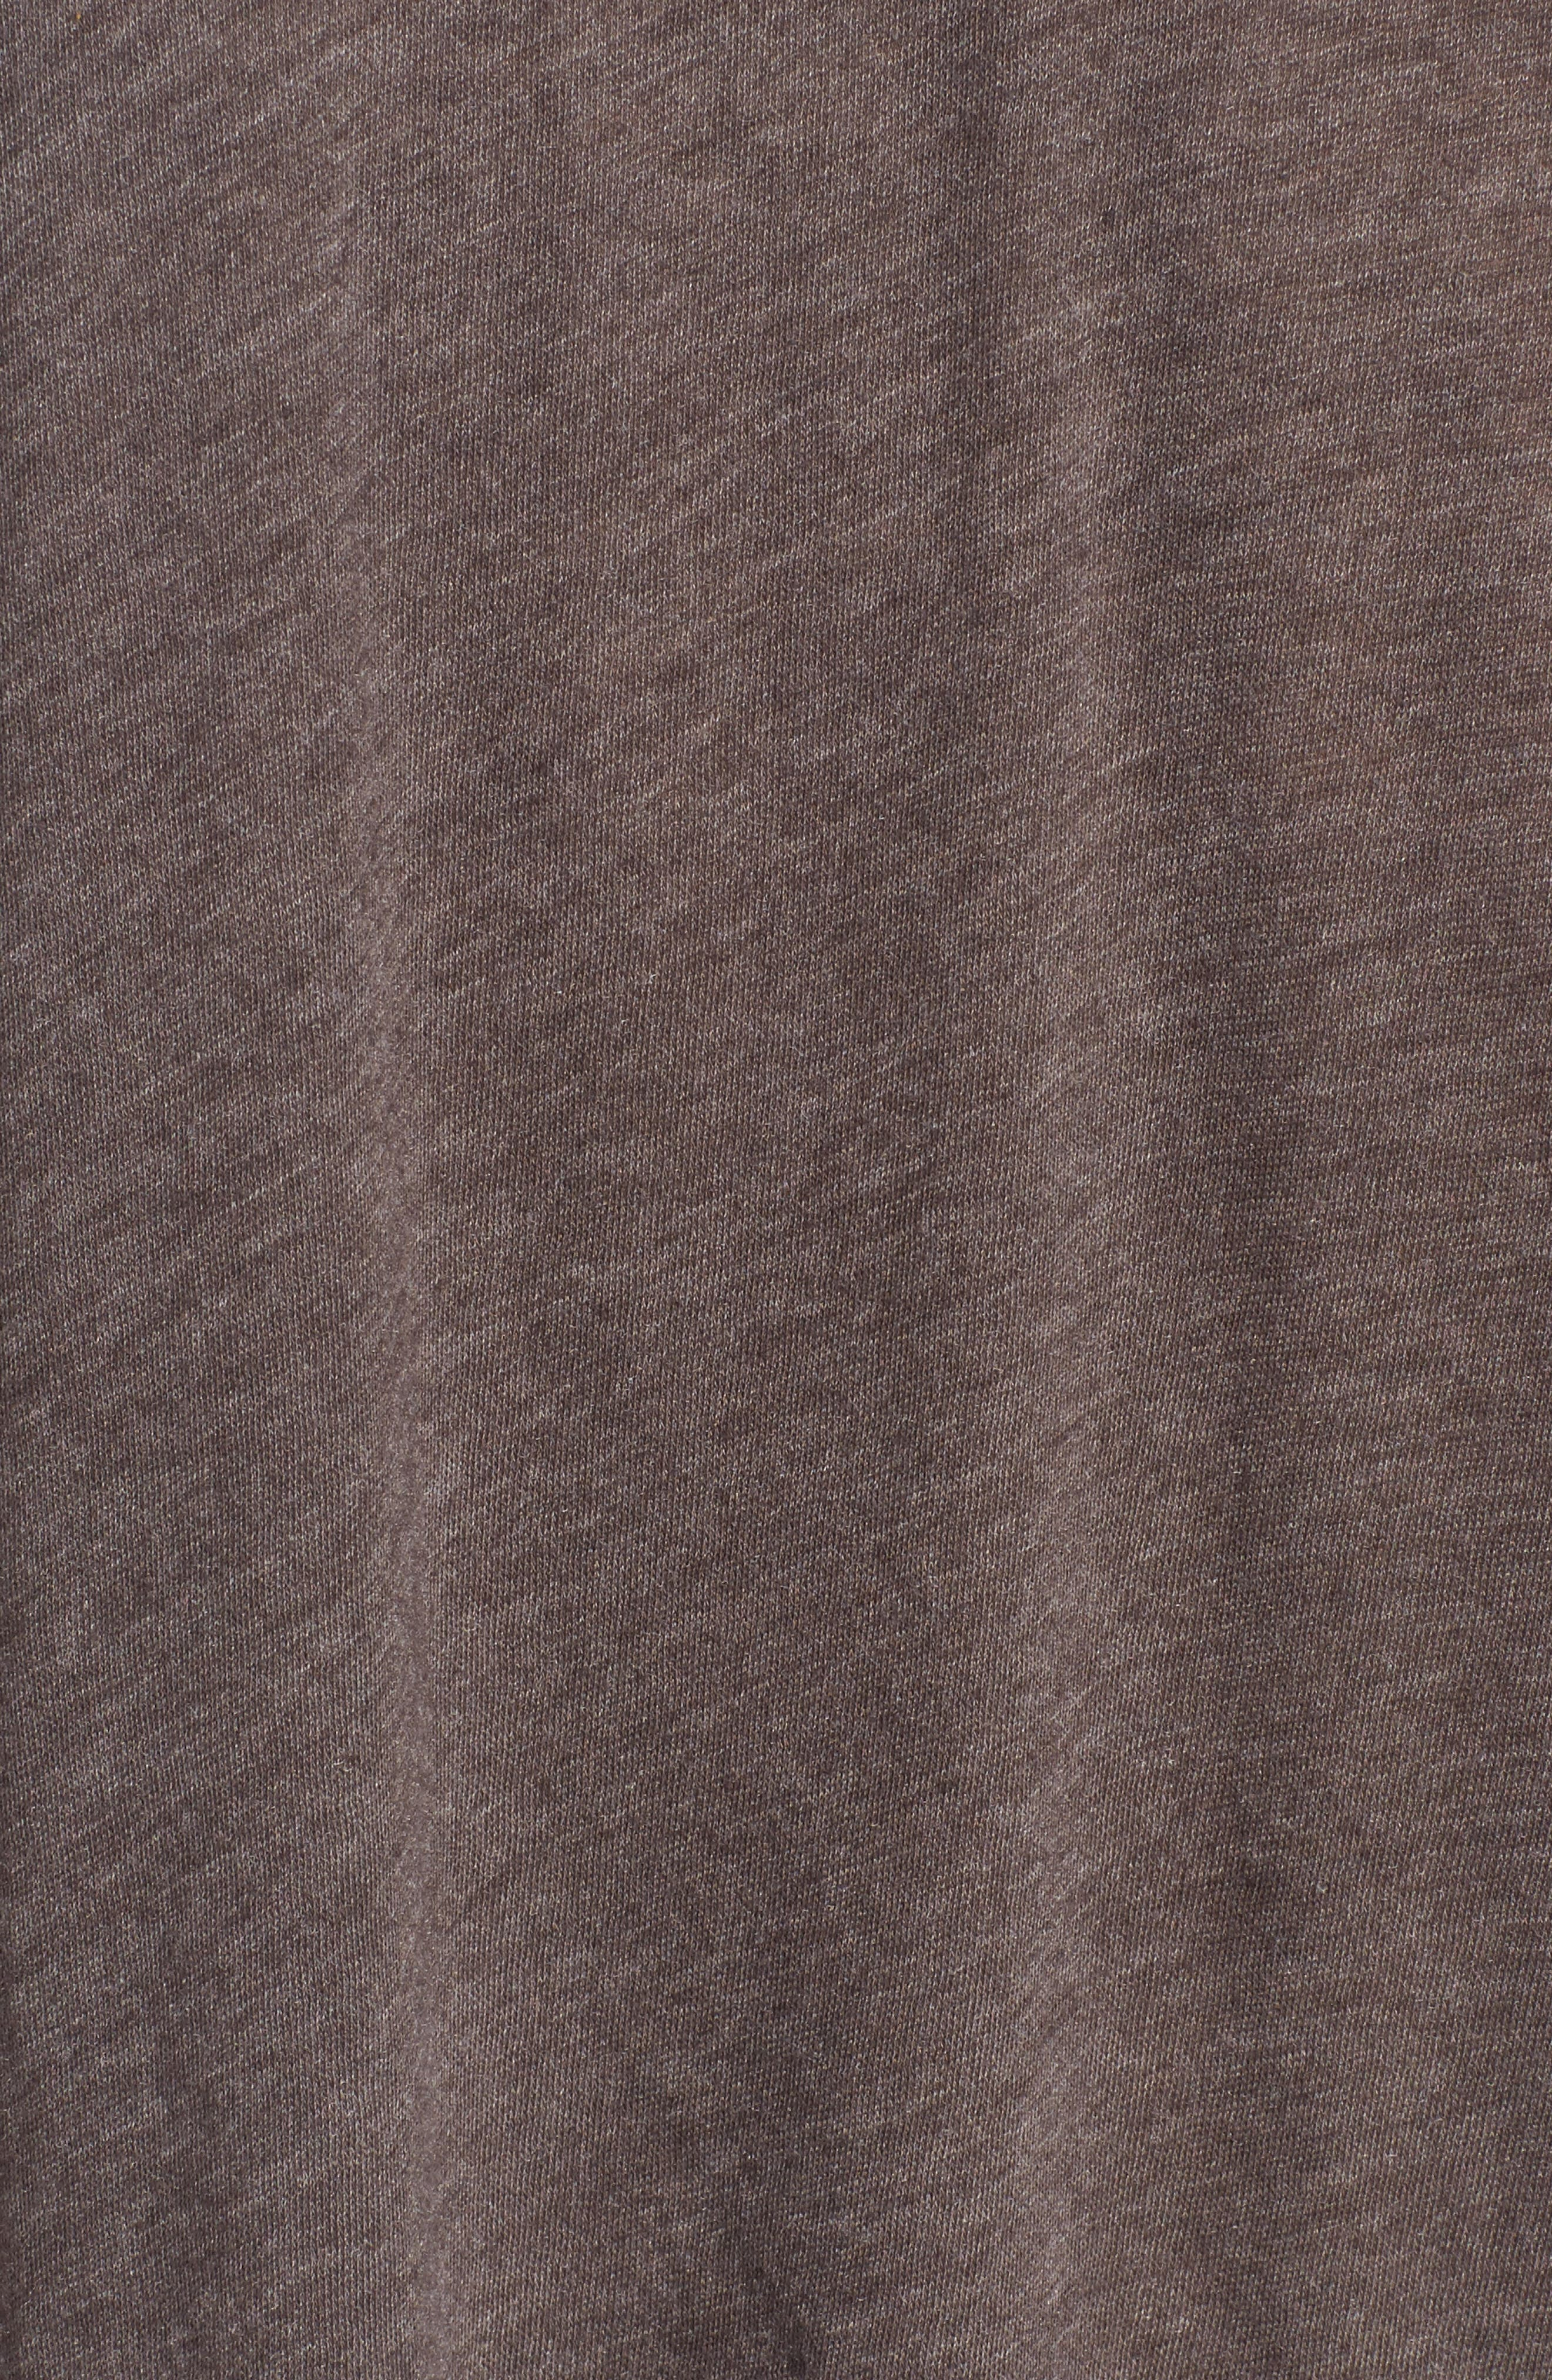 Coffee Destroyed Tee,                             Alternate thumbnail 5, color,                             Carbon Brown